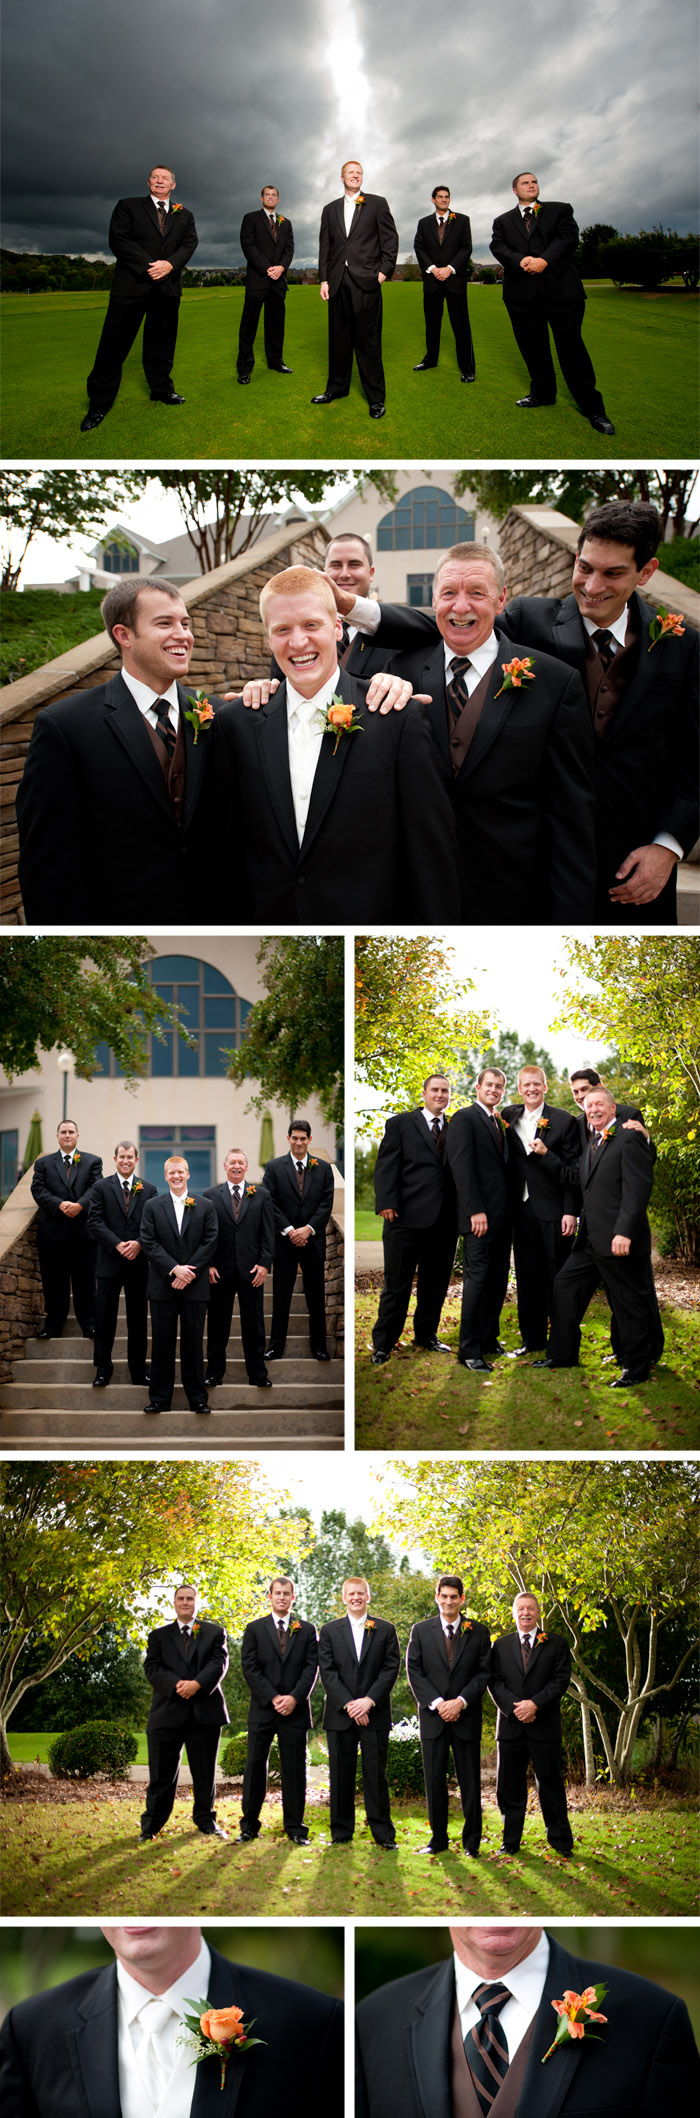 groomsmen3 Jessica + Sam | Clemmons, NC Wedding